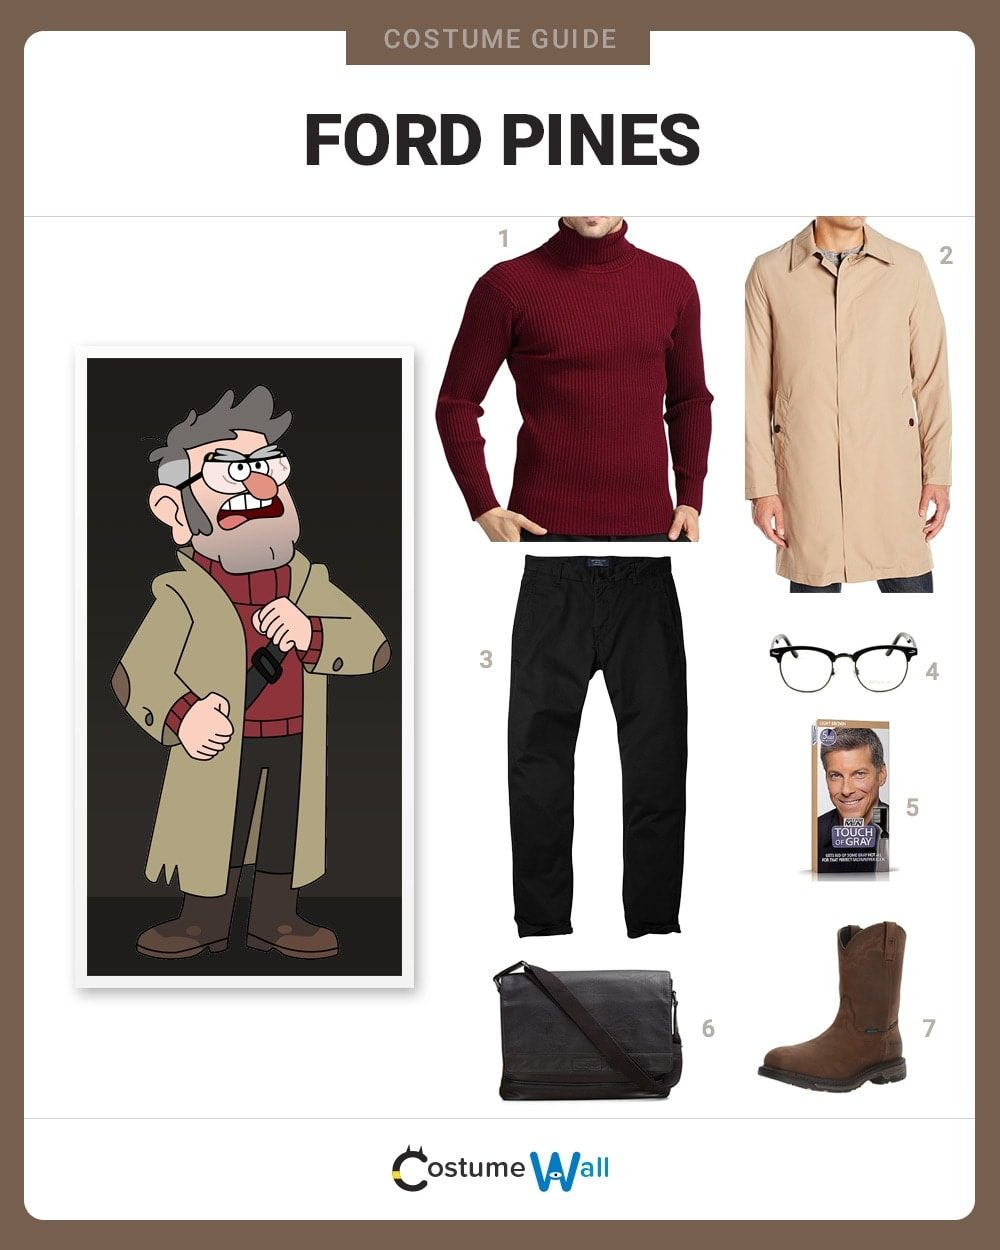 ford pines costume guide